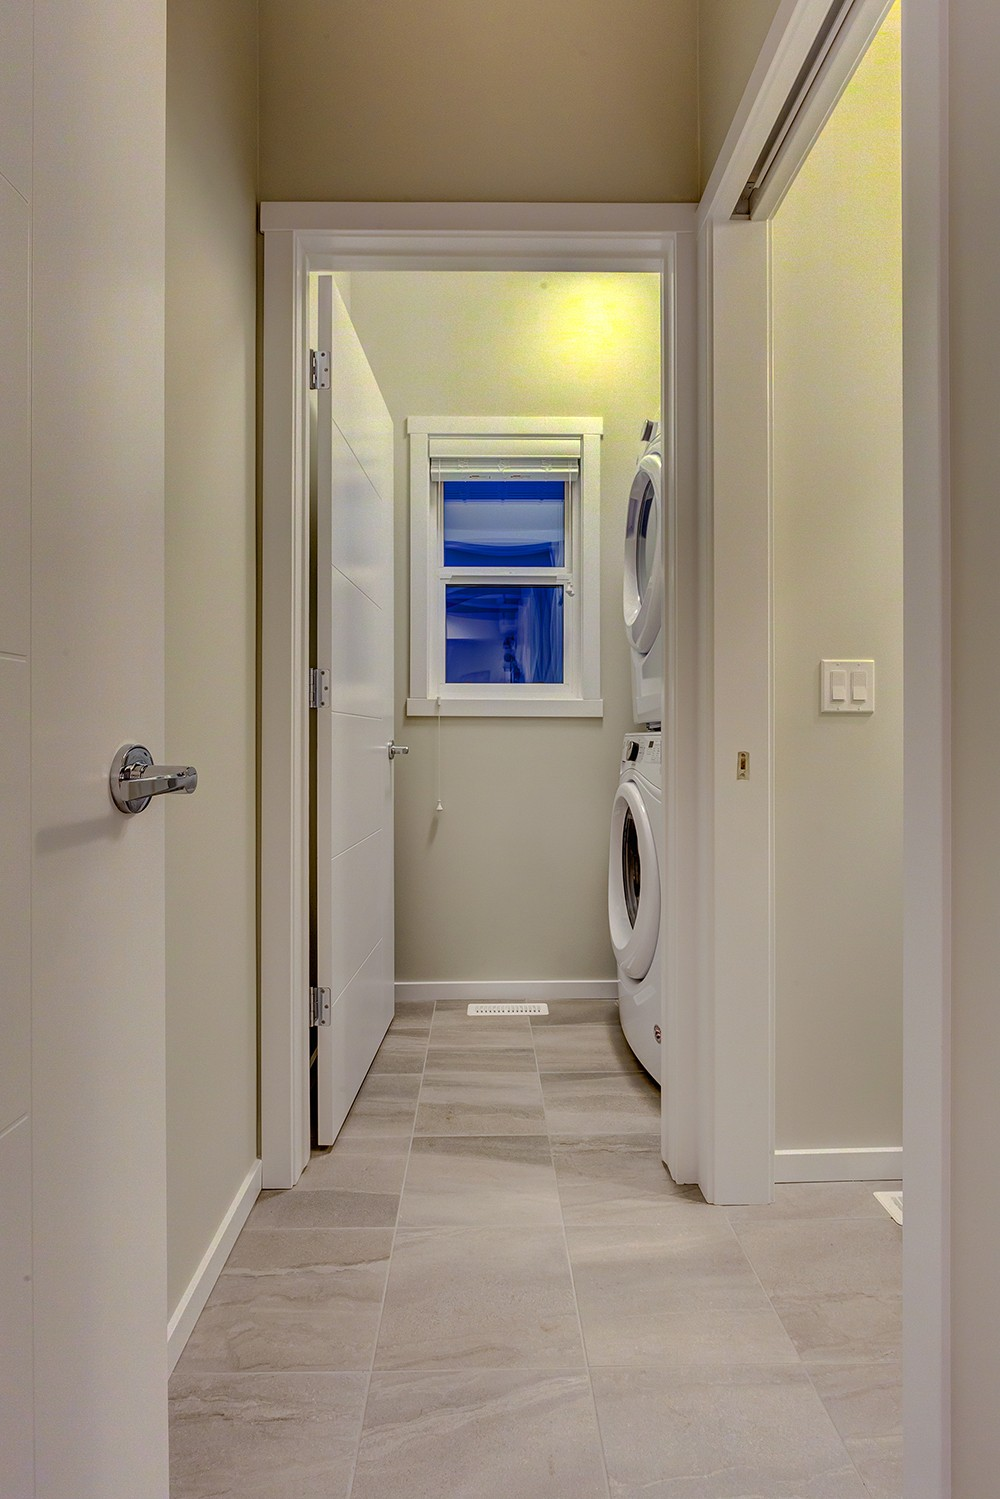 Laundry room in Caspia townhomes, South Edmonton, City Homes Master Builder